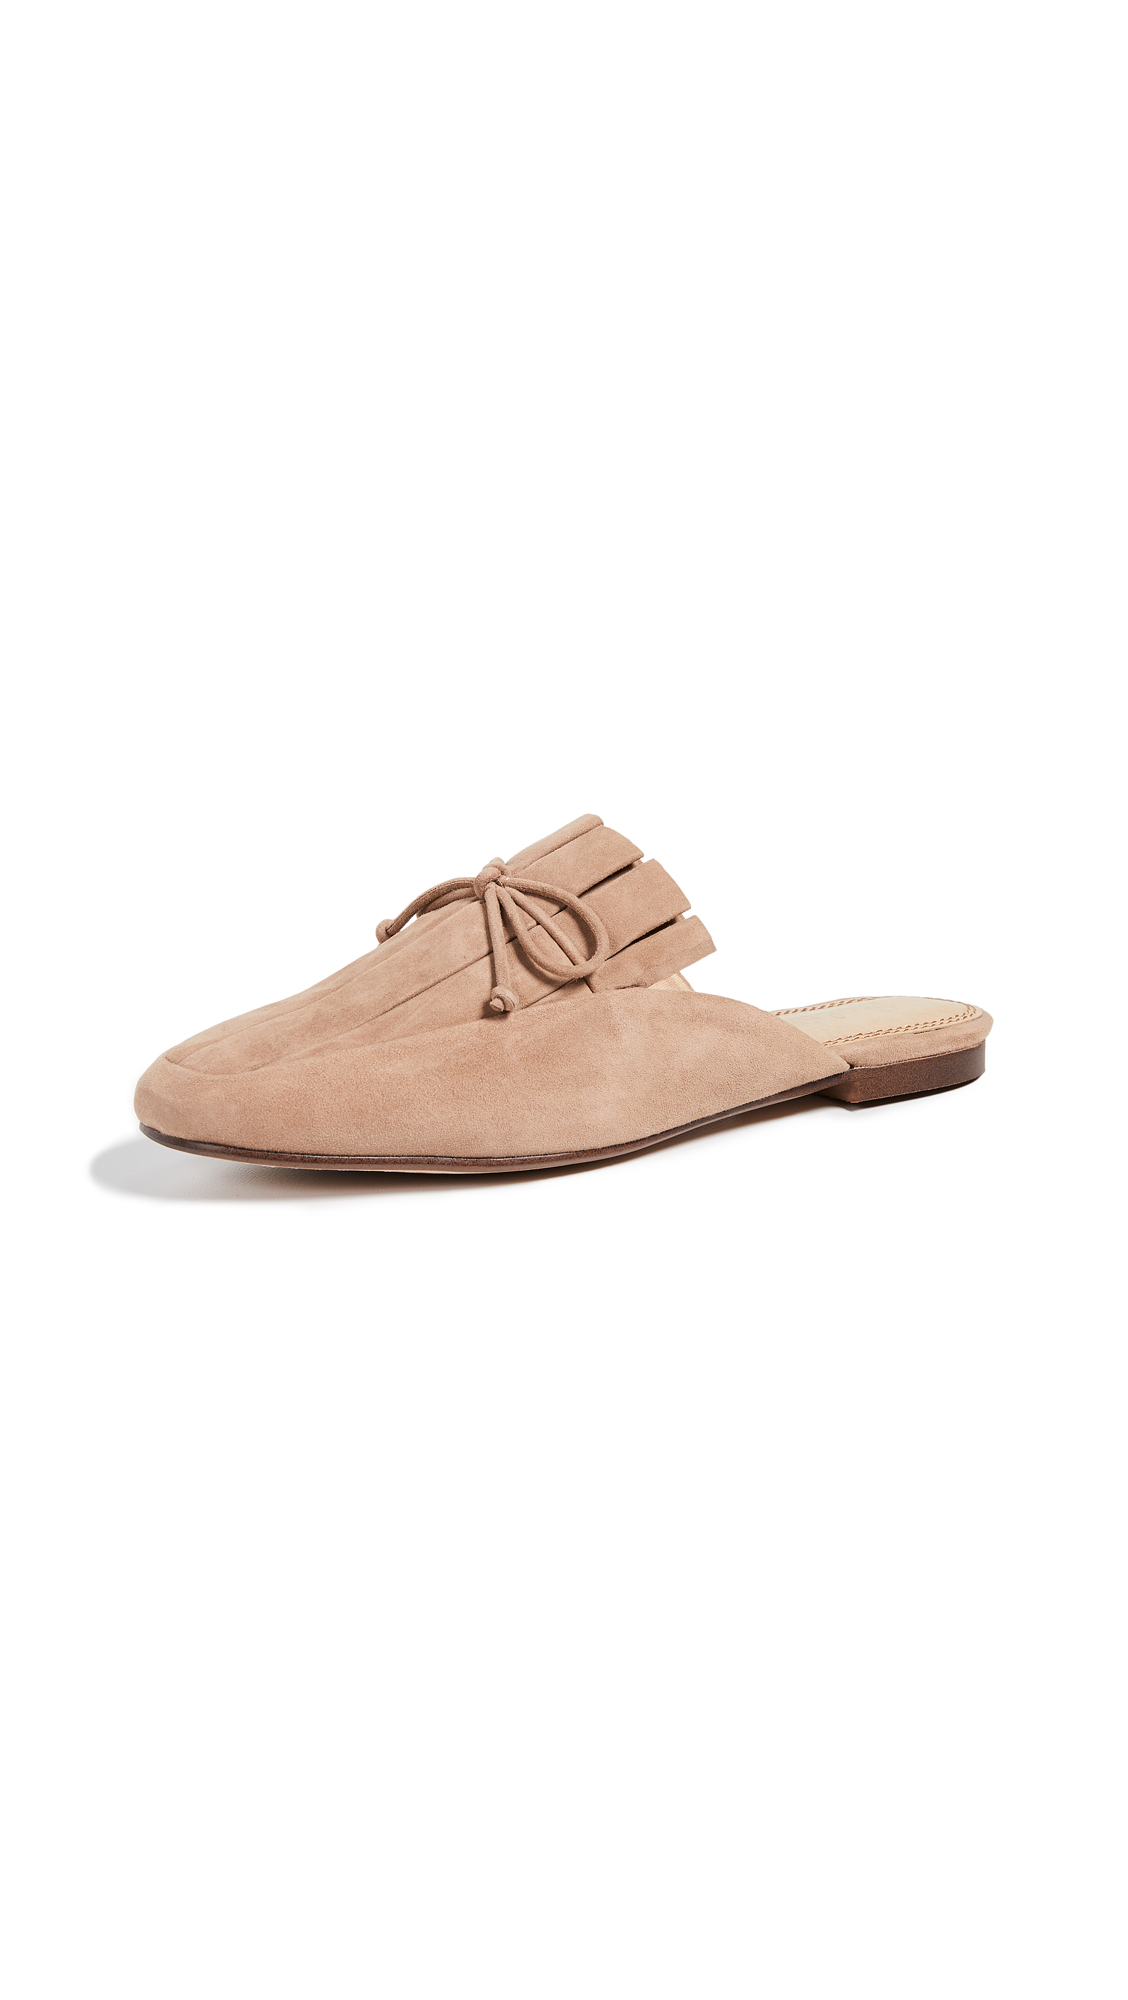 Splendid Chandler Mules - Dark Nude